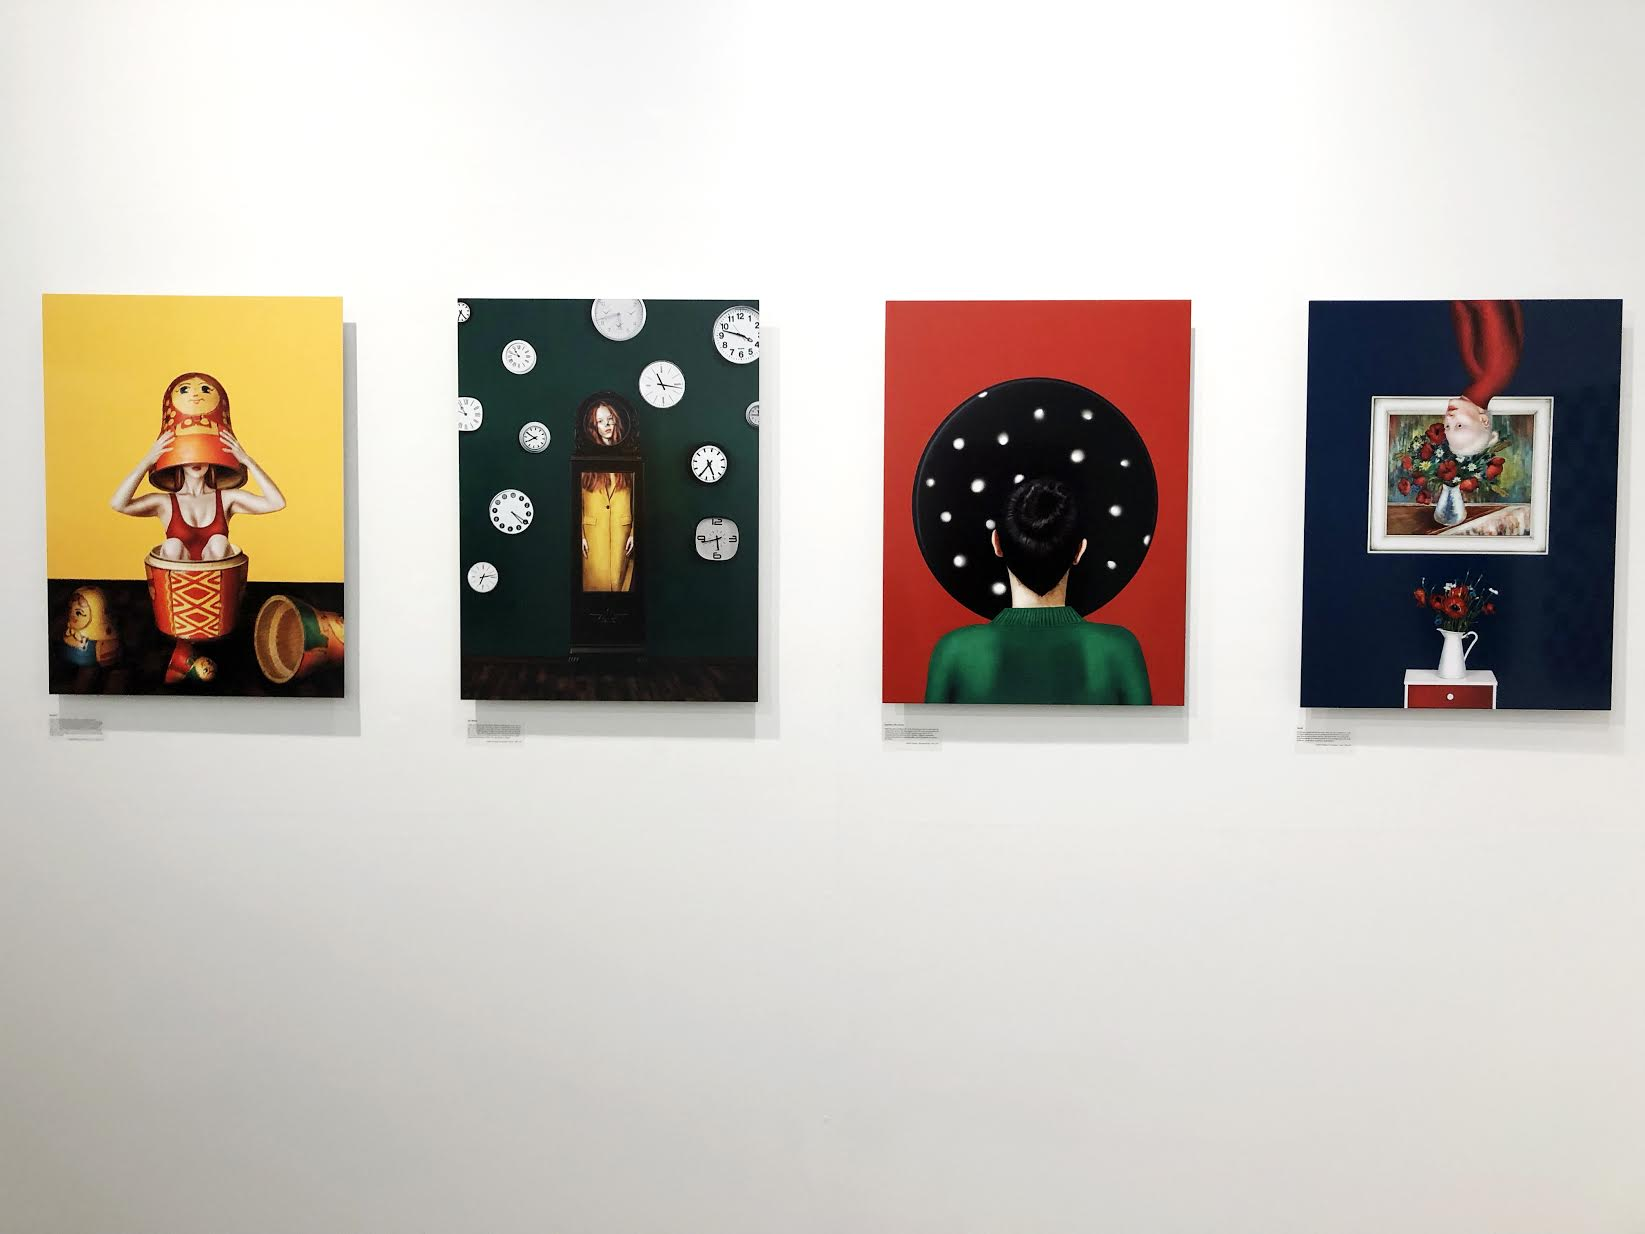 Feature Shoot/Print Swap Gallery show for Amelie Satzger and Lauren Menzies at UPI, New York